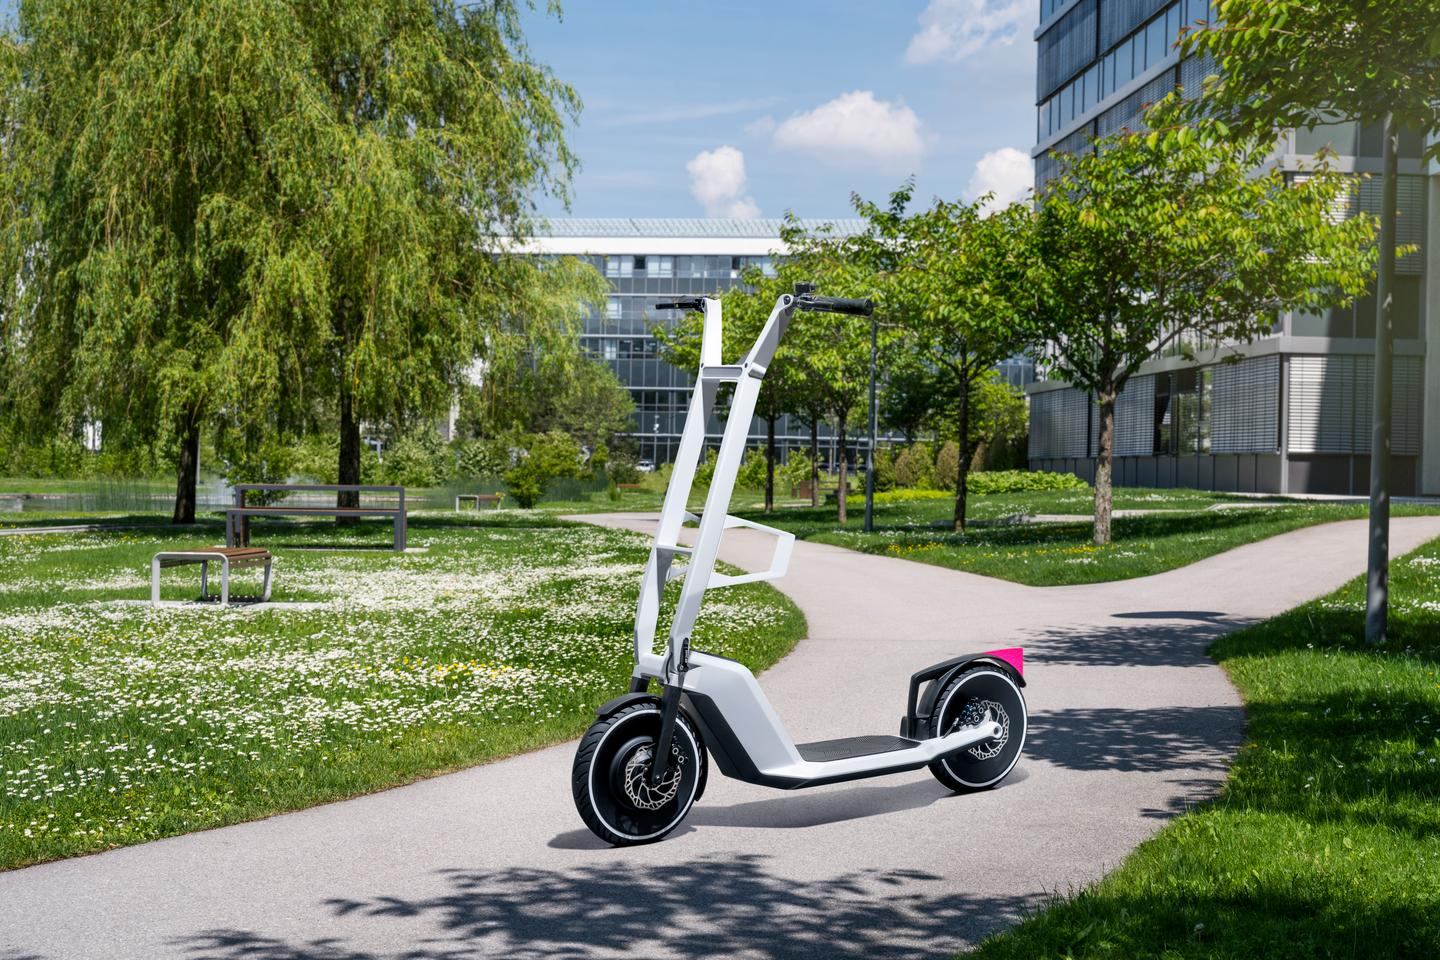 The Clever Commute electric kickscooter concept features a hub motor in the front wheel and a removable battery pack